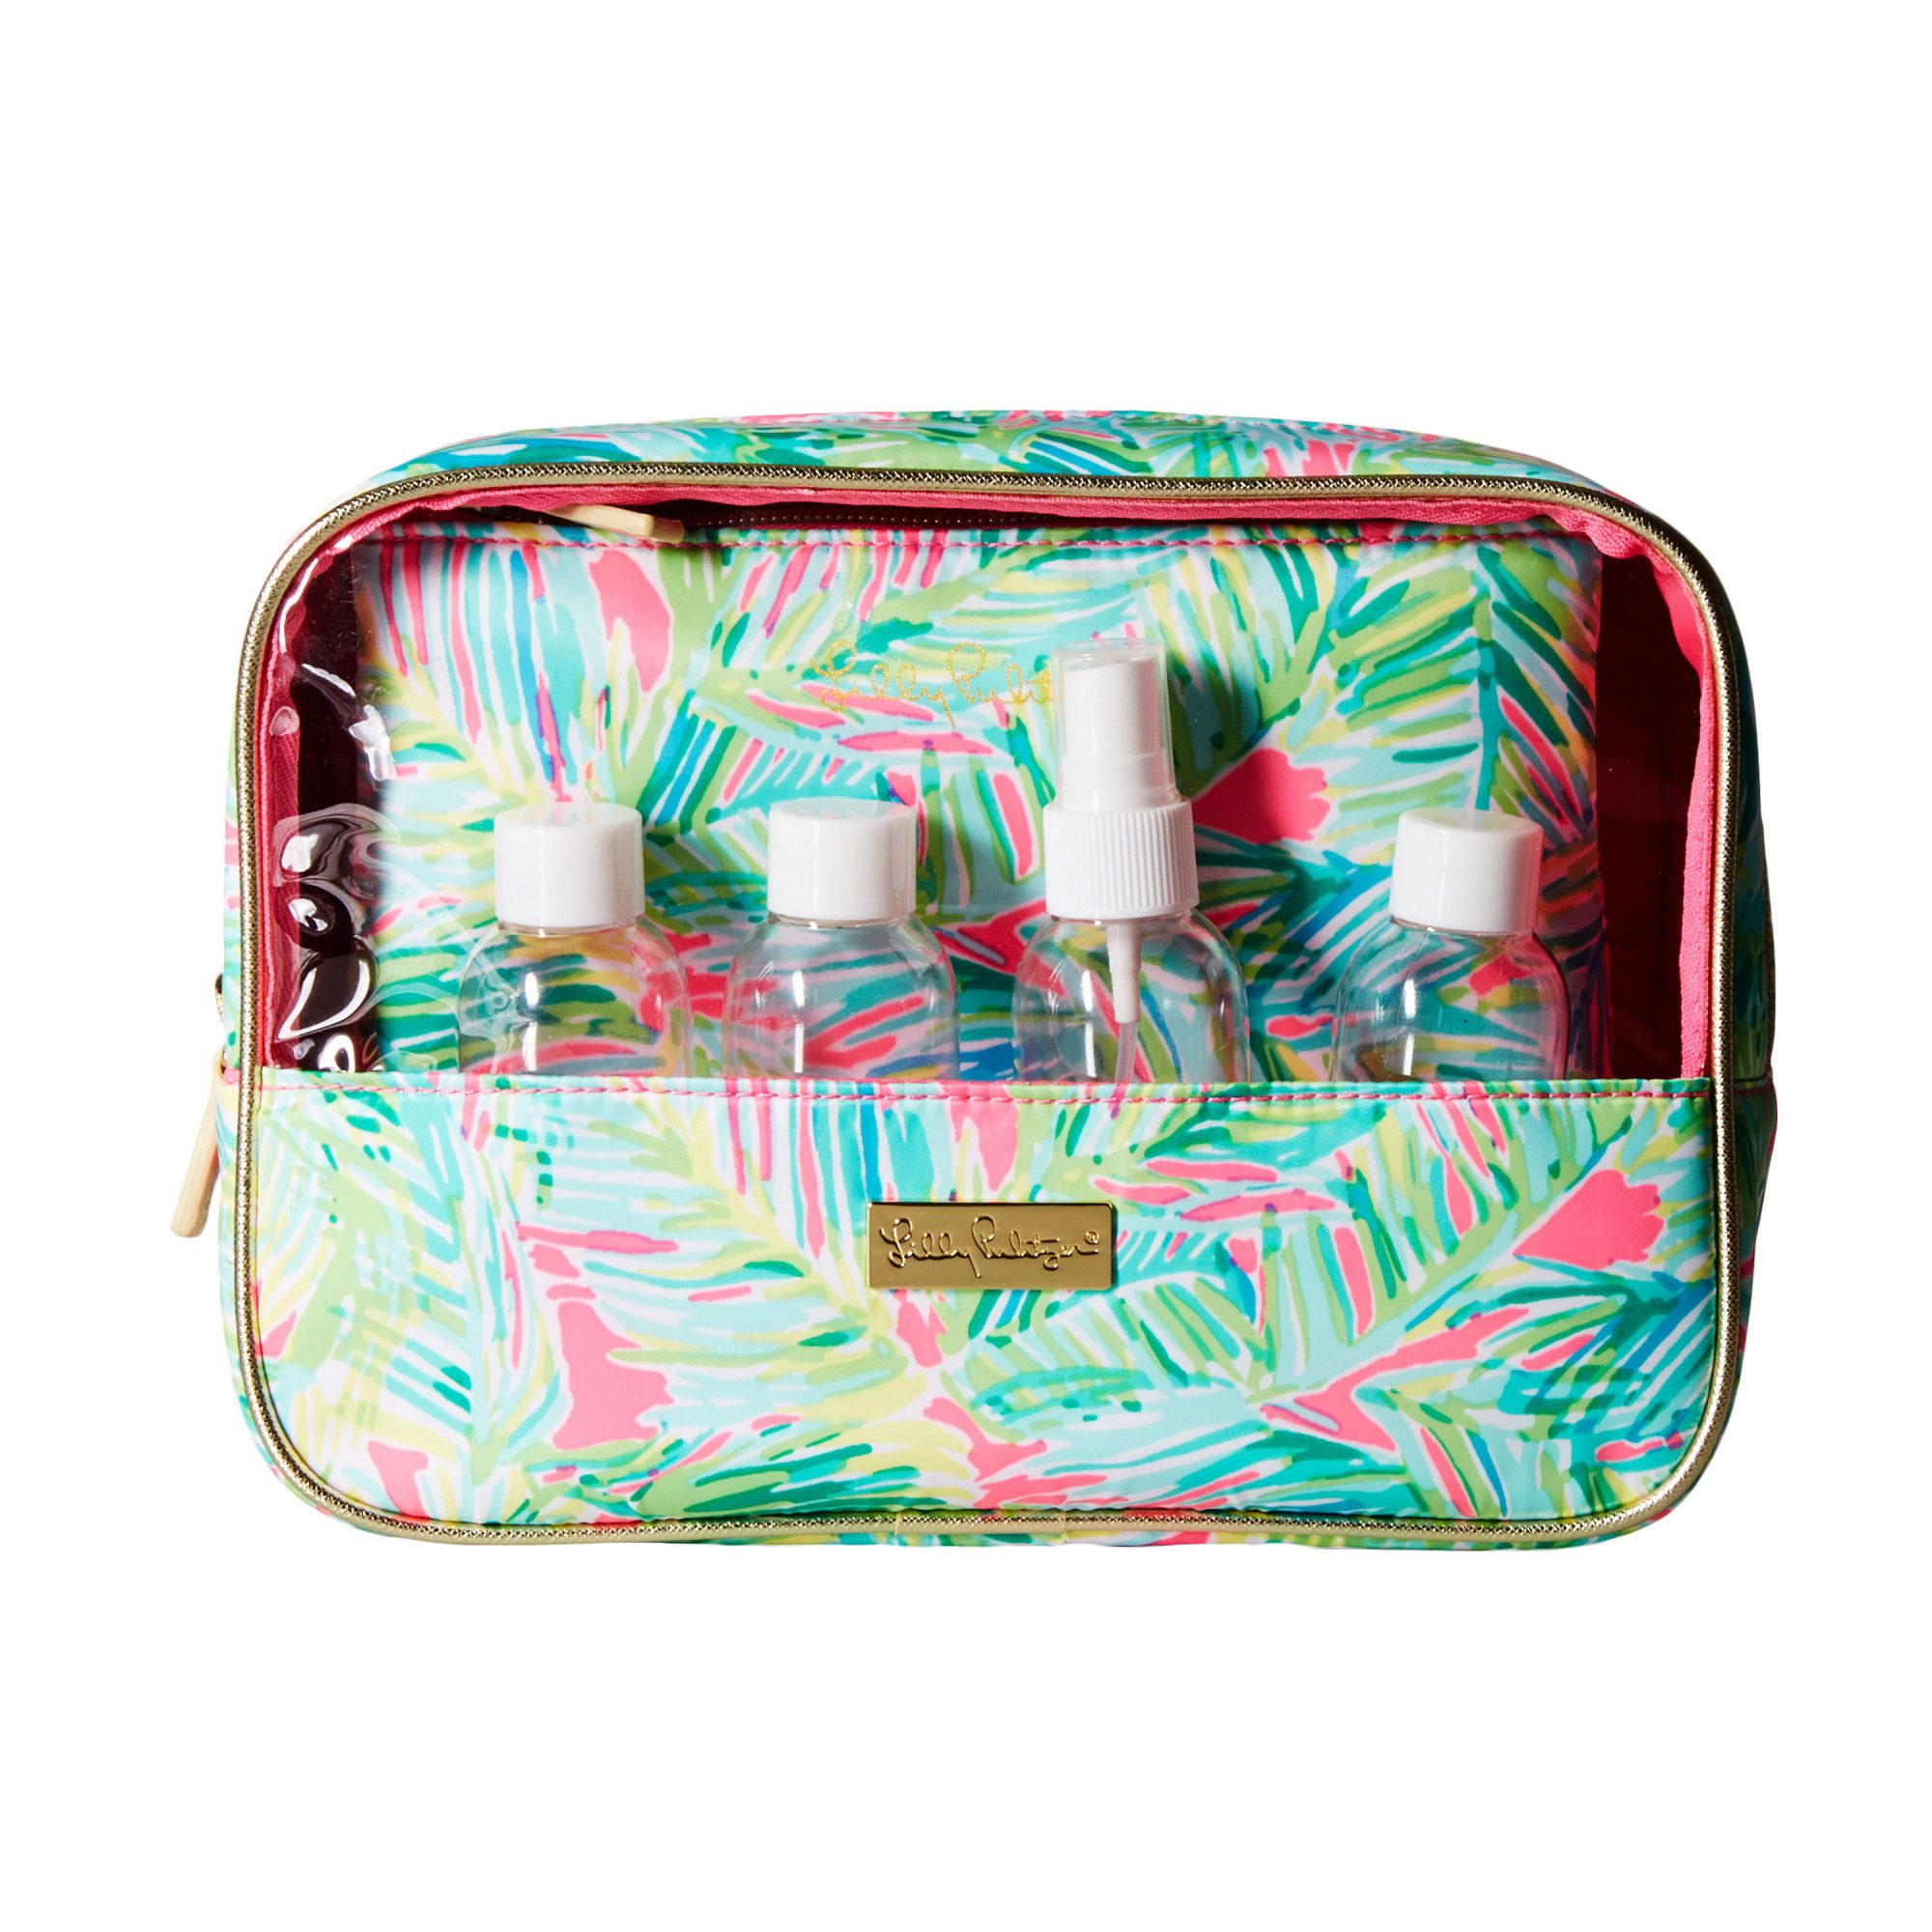 Lilly Pulitzer On Board Dopp Kit Image